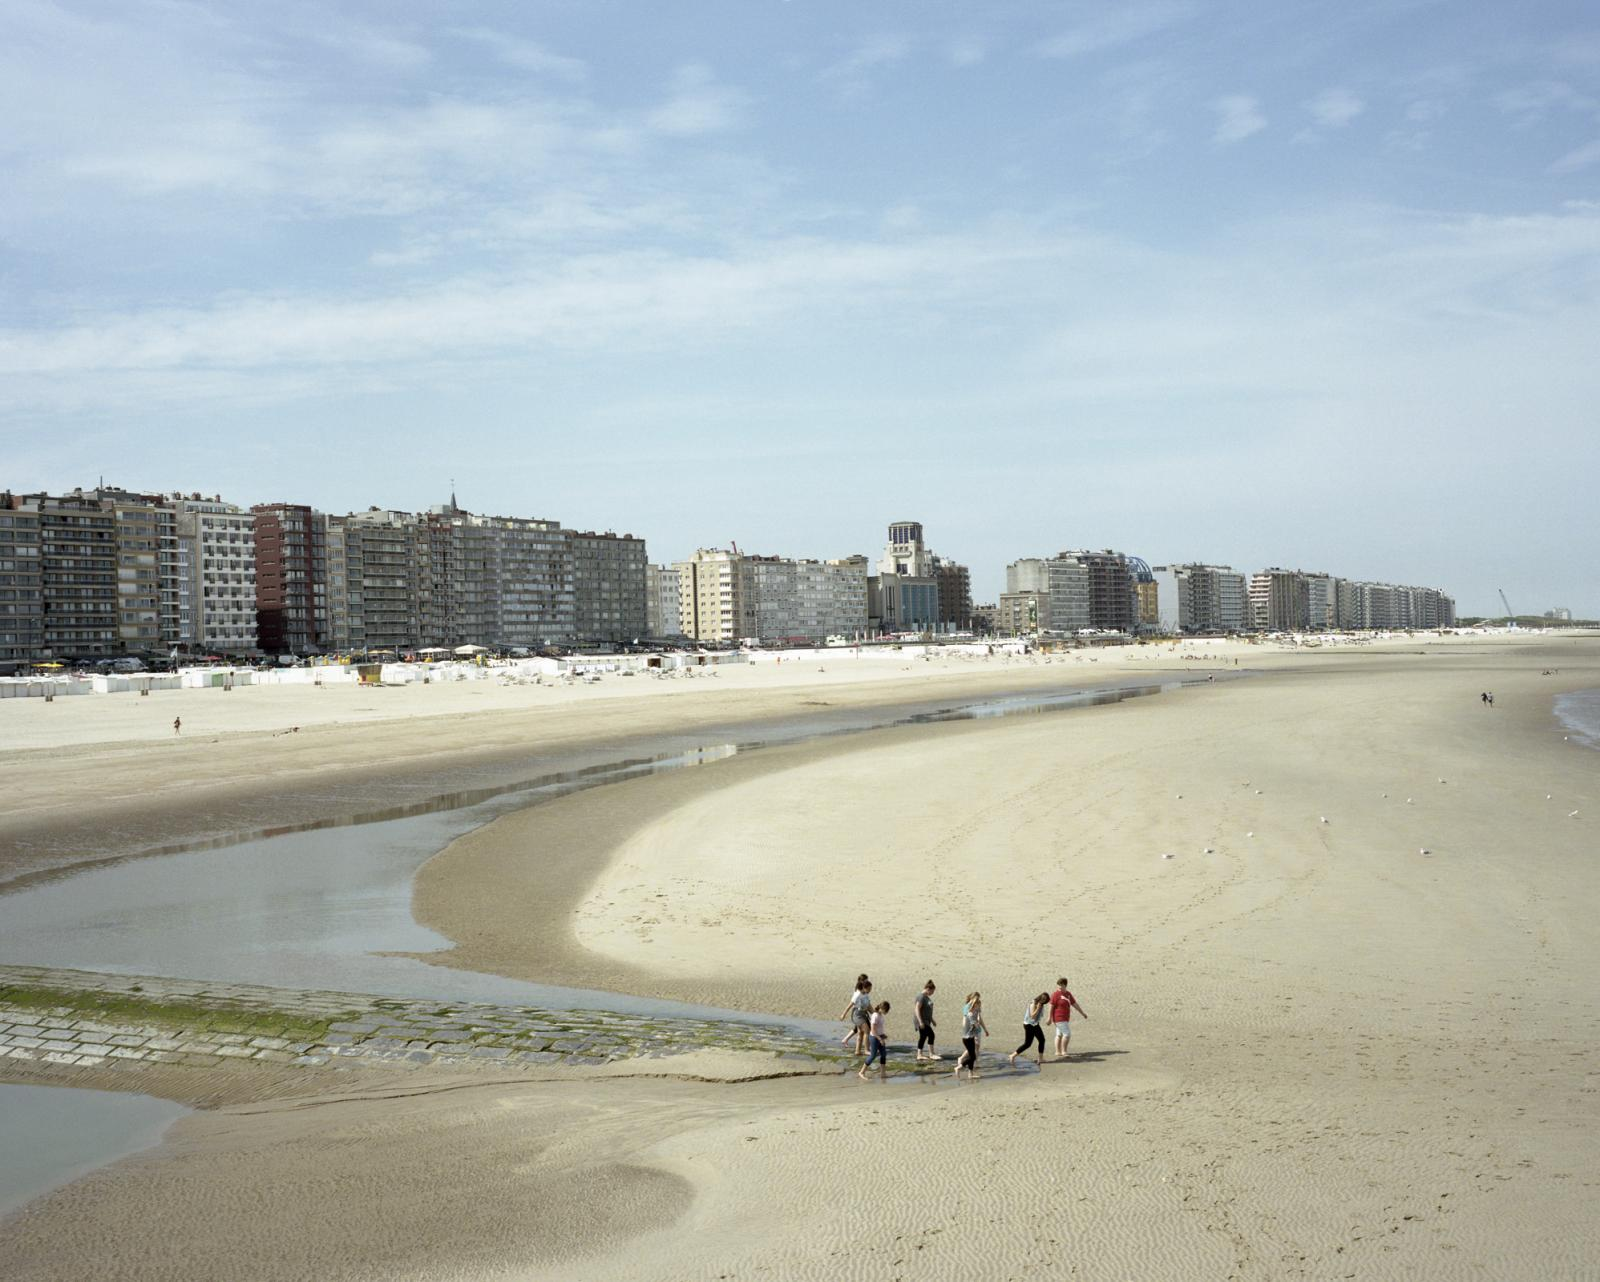 Belgium, Knokke-Heist. A view of the seaside of the small city at the border with Holland. Knokke-Heist is Belgium's best-known and most affluent seaside resort, the territory witnessed an overbuilding, today the city has also a Casino among others tourist facilities.